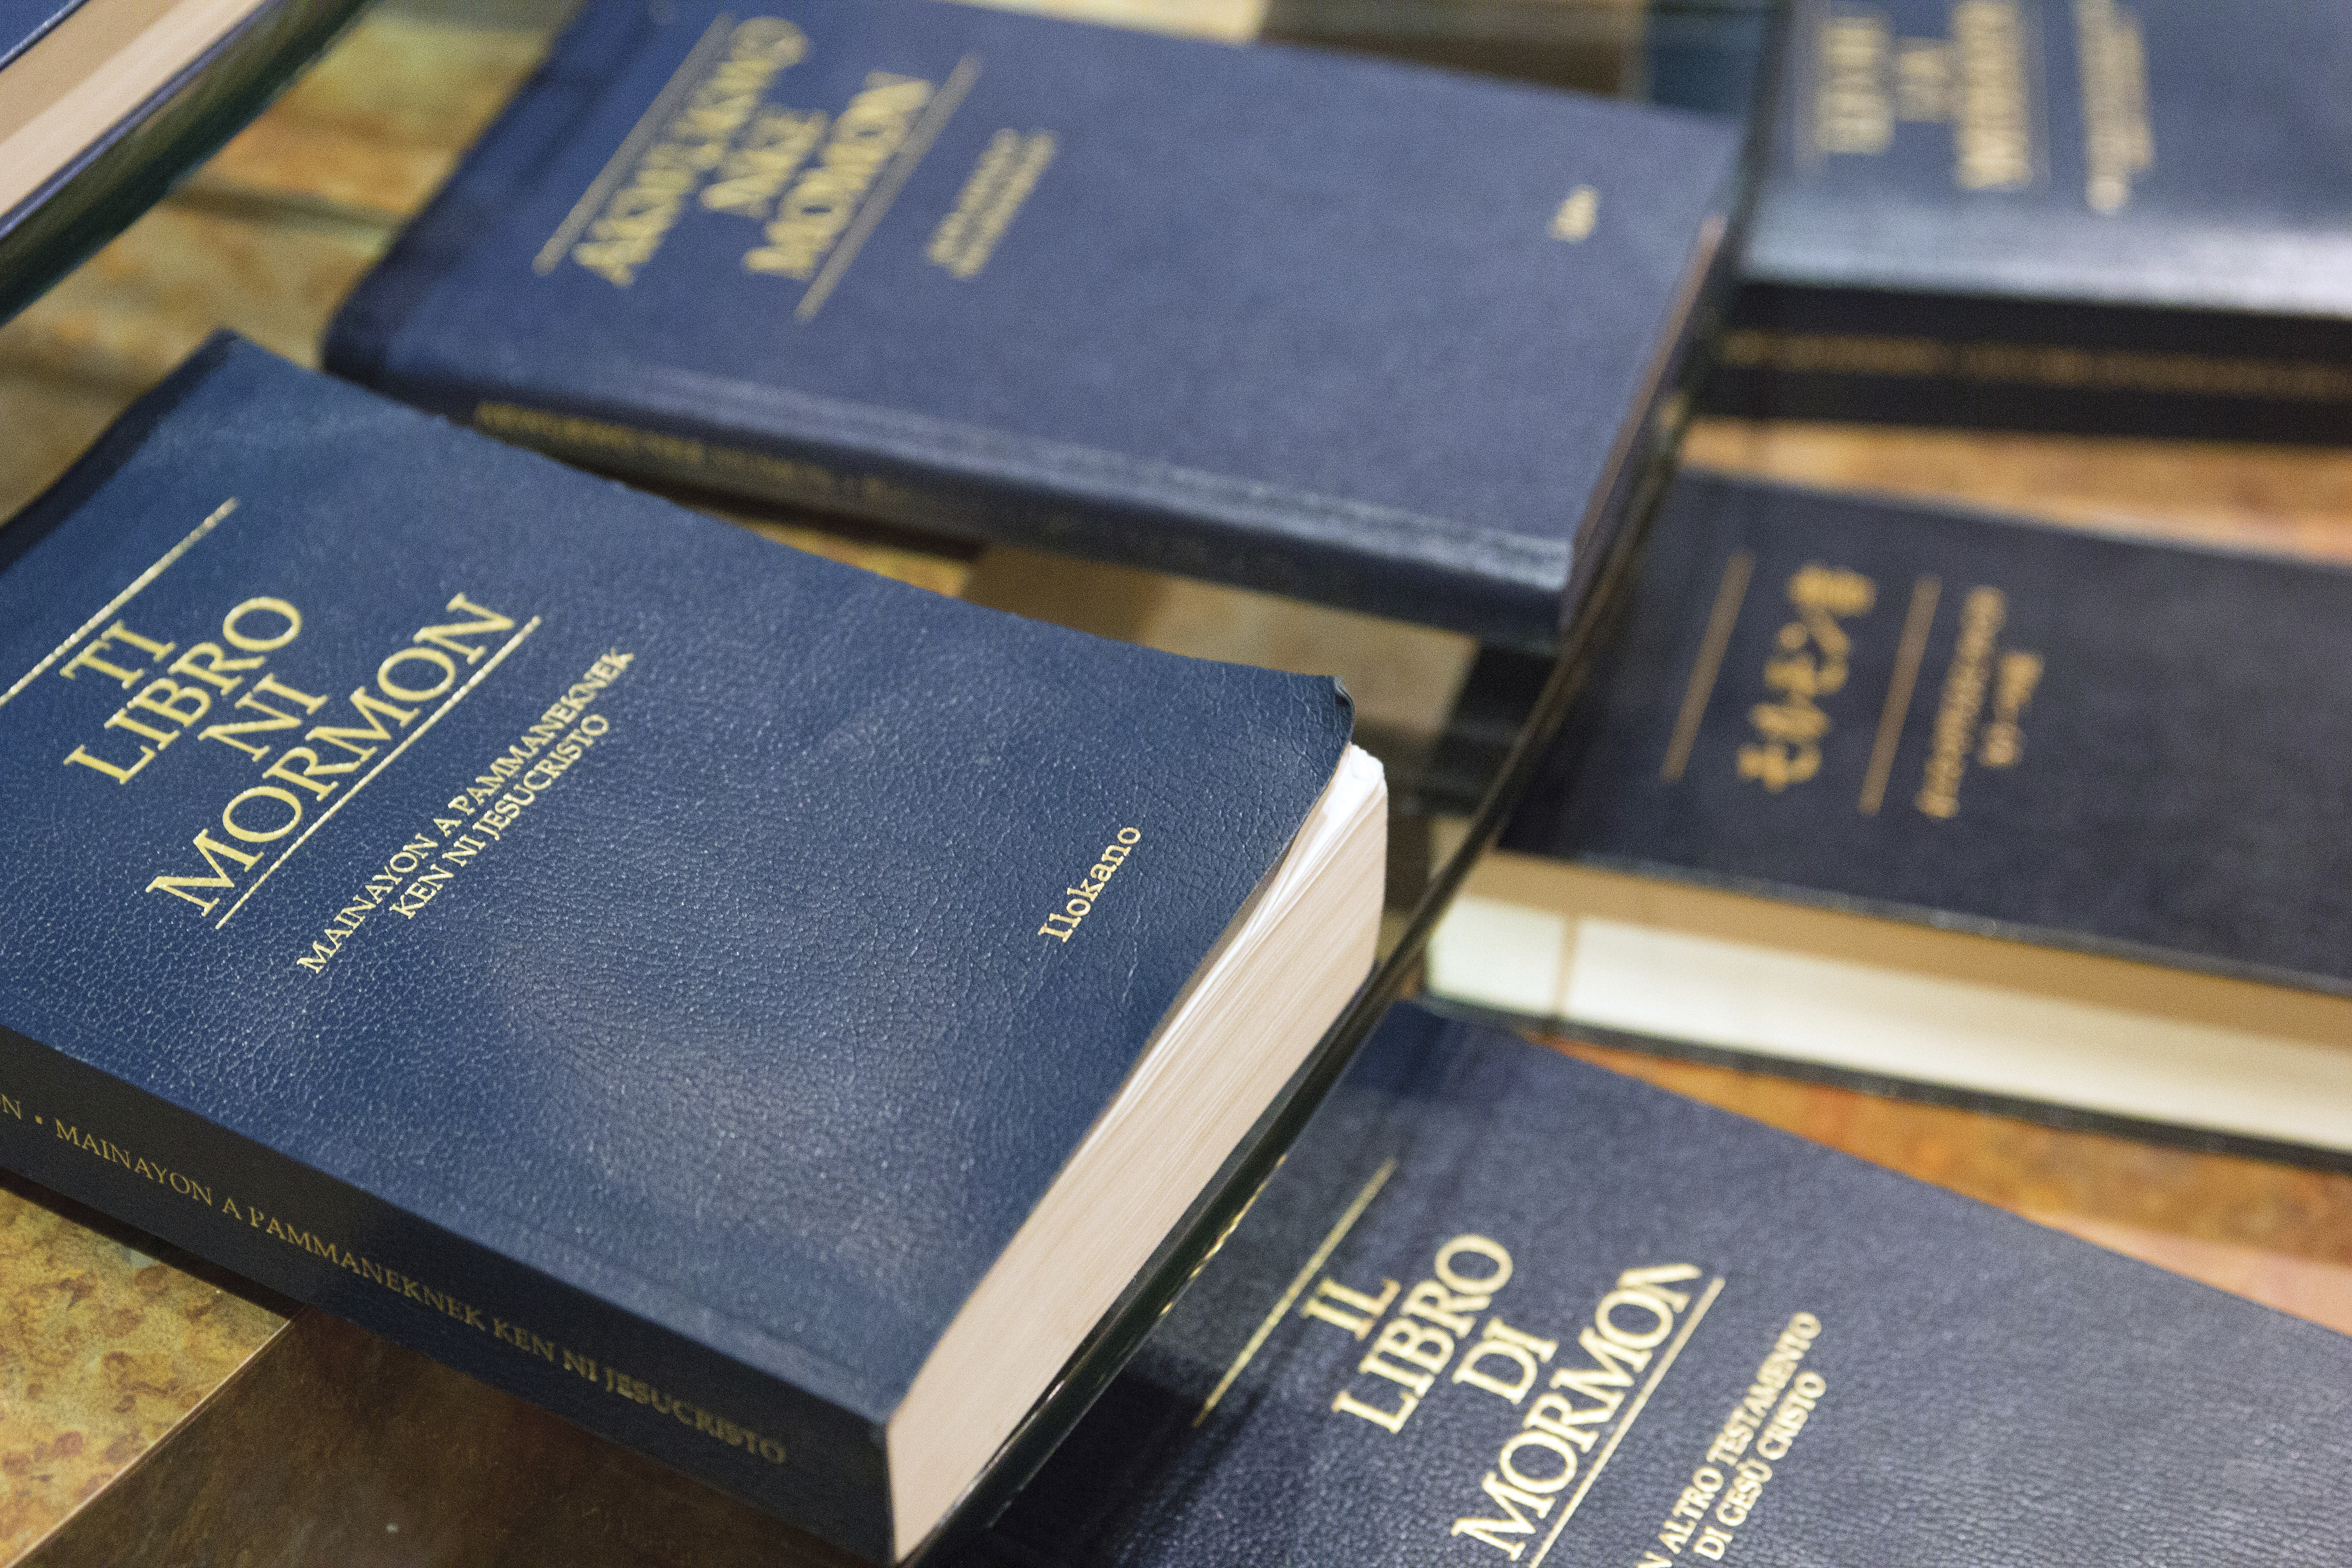 Copies of the Book of Mormon in a variety of languages at the Independence Visitors' Center in Missouri.